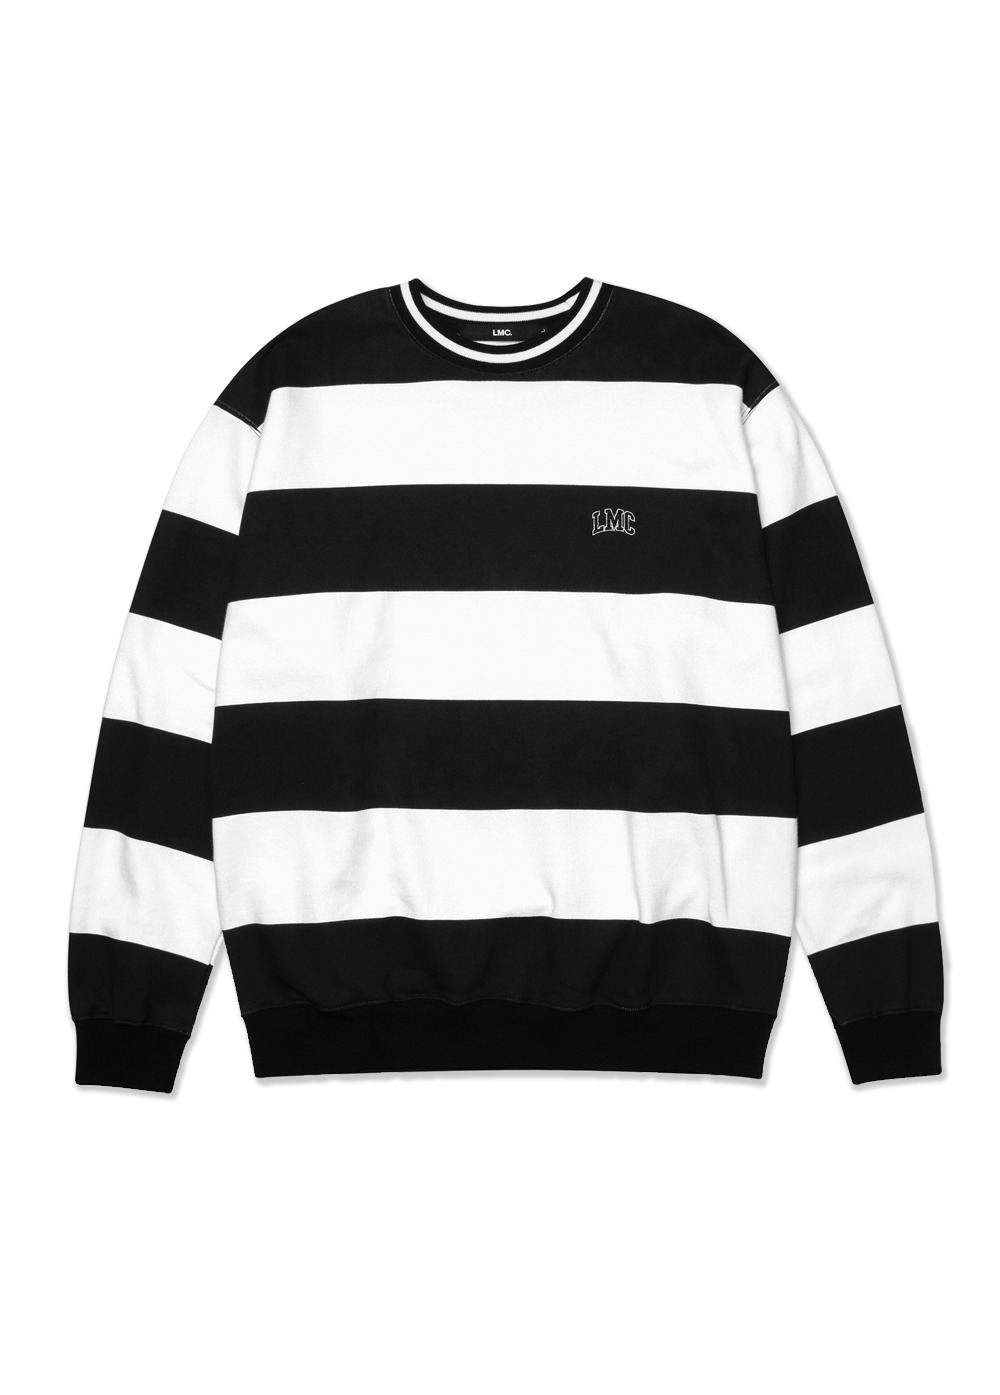 LMC PRINTED STRIPE SWEATSHIRT black